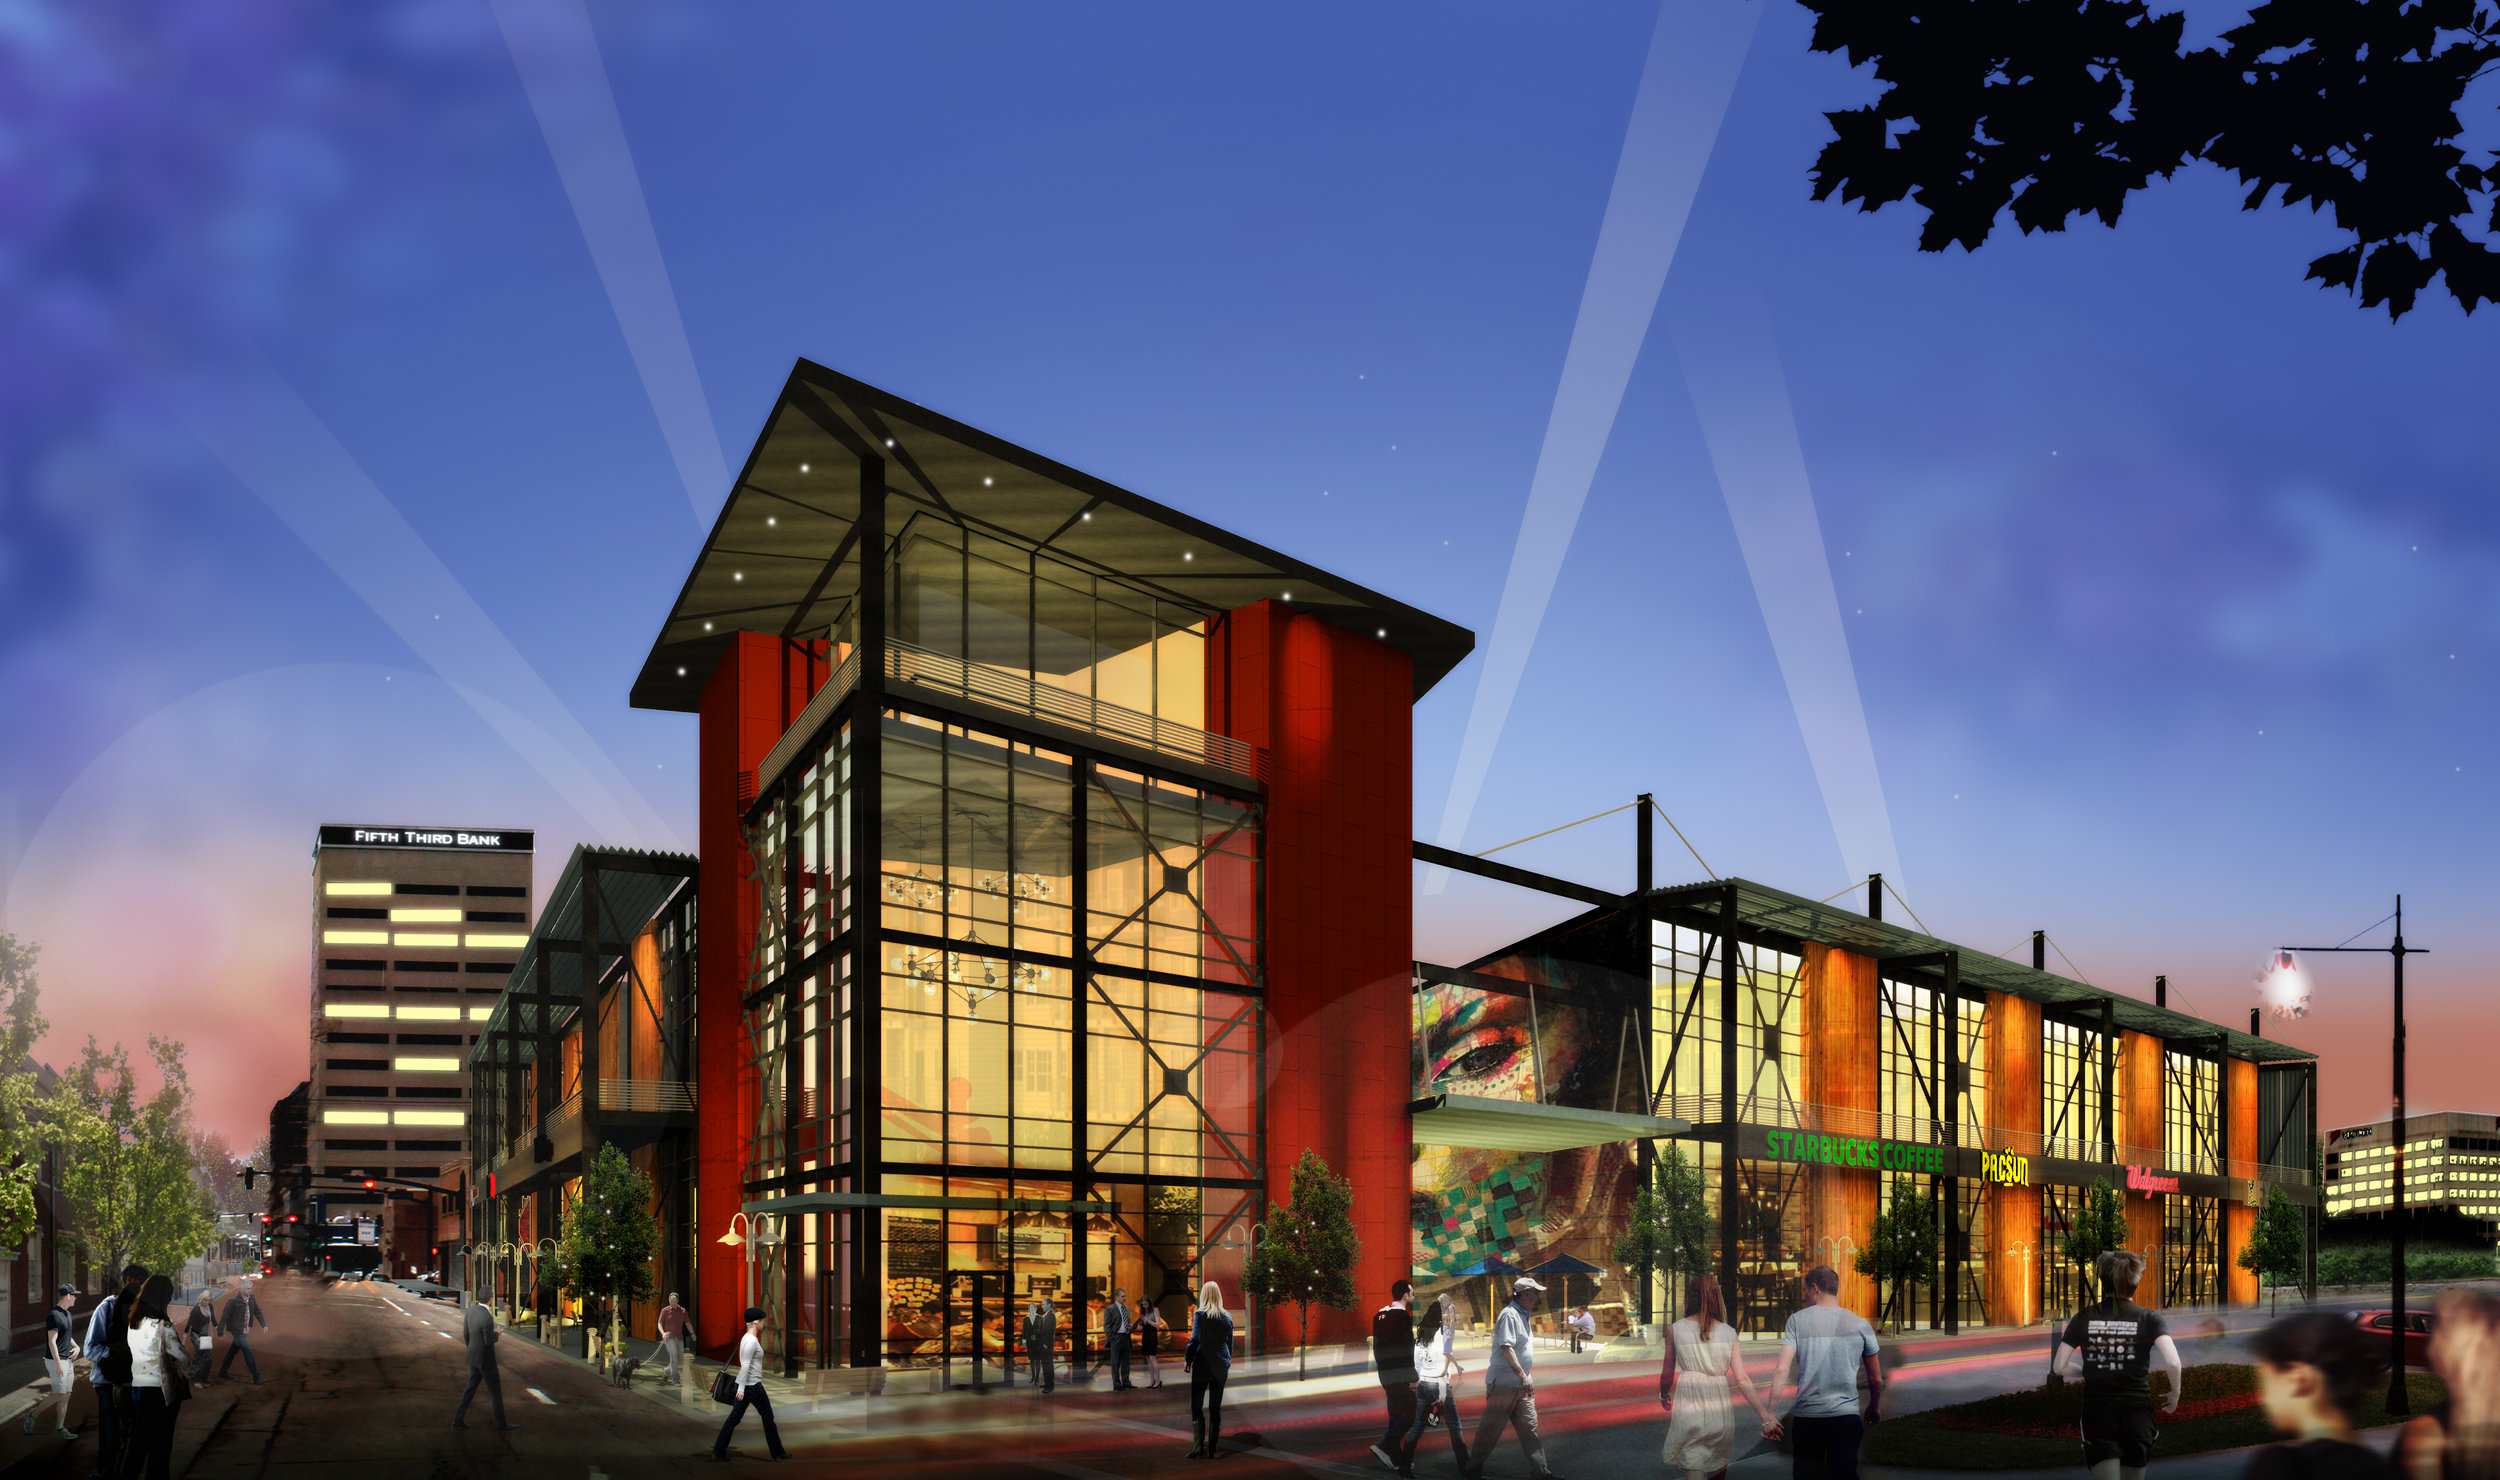 Downtown plaza - An interesting concept design for multi-purpose commercial use in downtown Evansville.